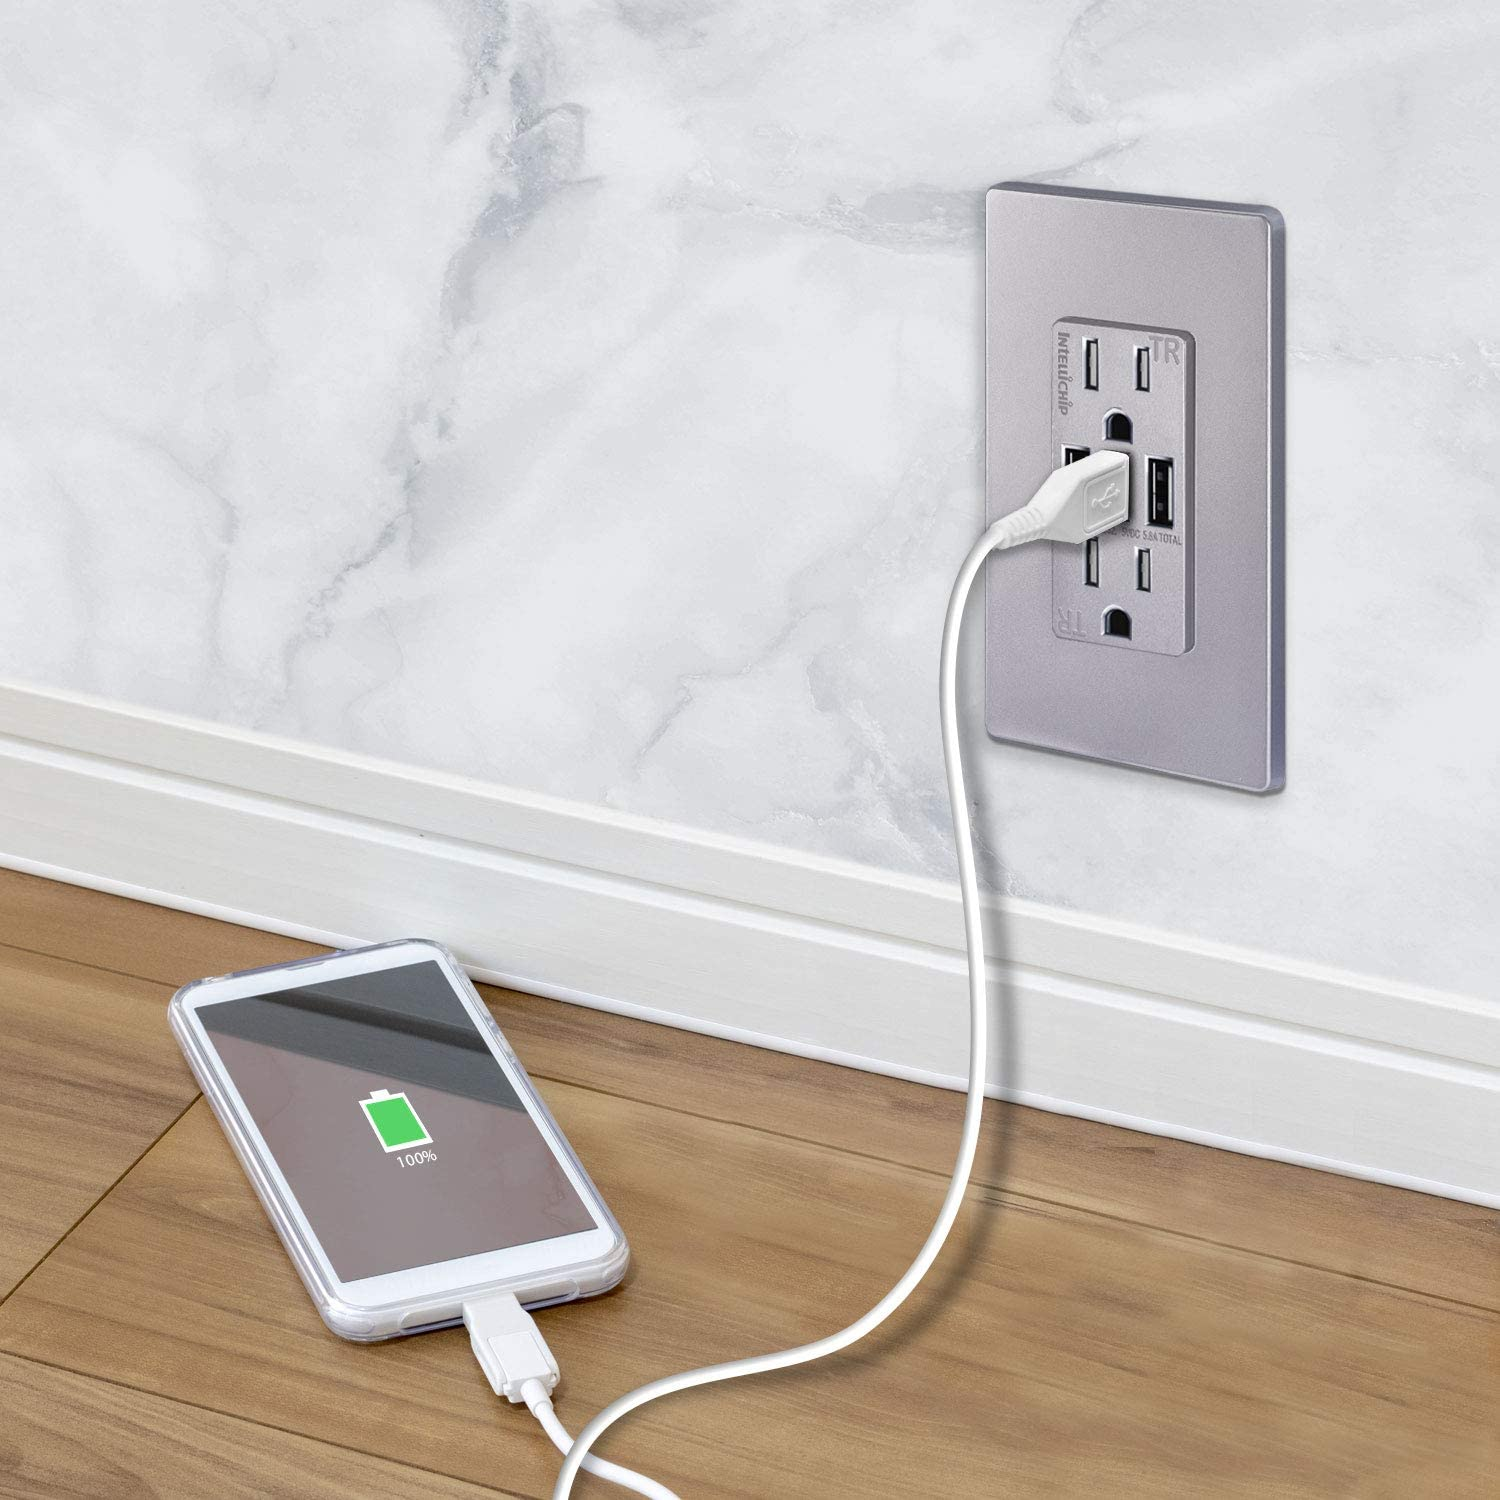 UL Listed HTC /& More Smartphones Samsung Galaxy S9//S8//S7 LG TOPGREENER 5.8A 3-Port USB Wall Outlet Compatible with iPhone 11//11 Pro//XS//MAX//XR 15A Tamper-Resistant Receptacle TU21558A3